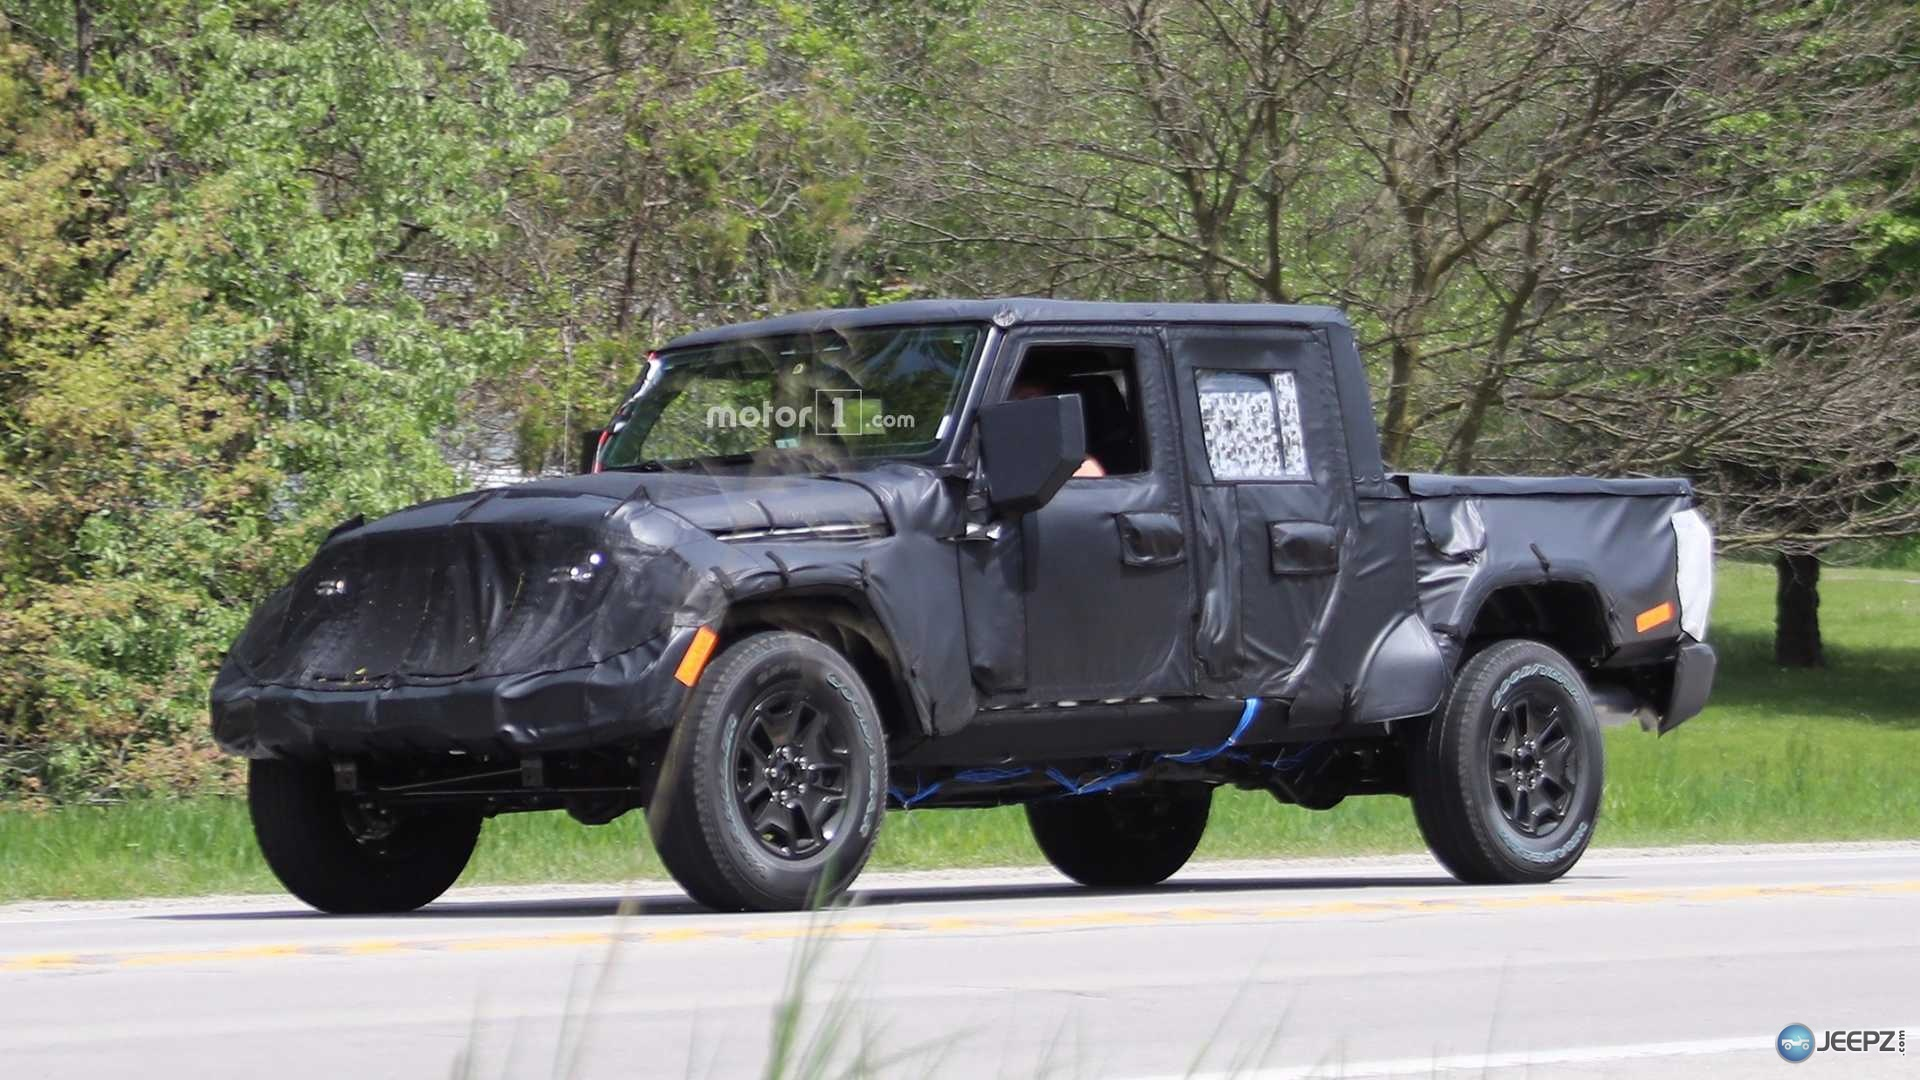 2017 Jeep Wrangler Pickup Price >> More photos of the upcoming 2019 Jeep Wrangler Pickup